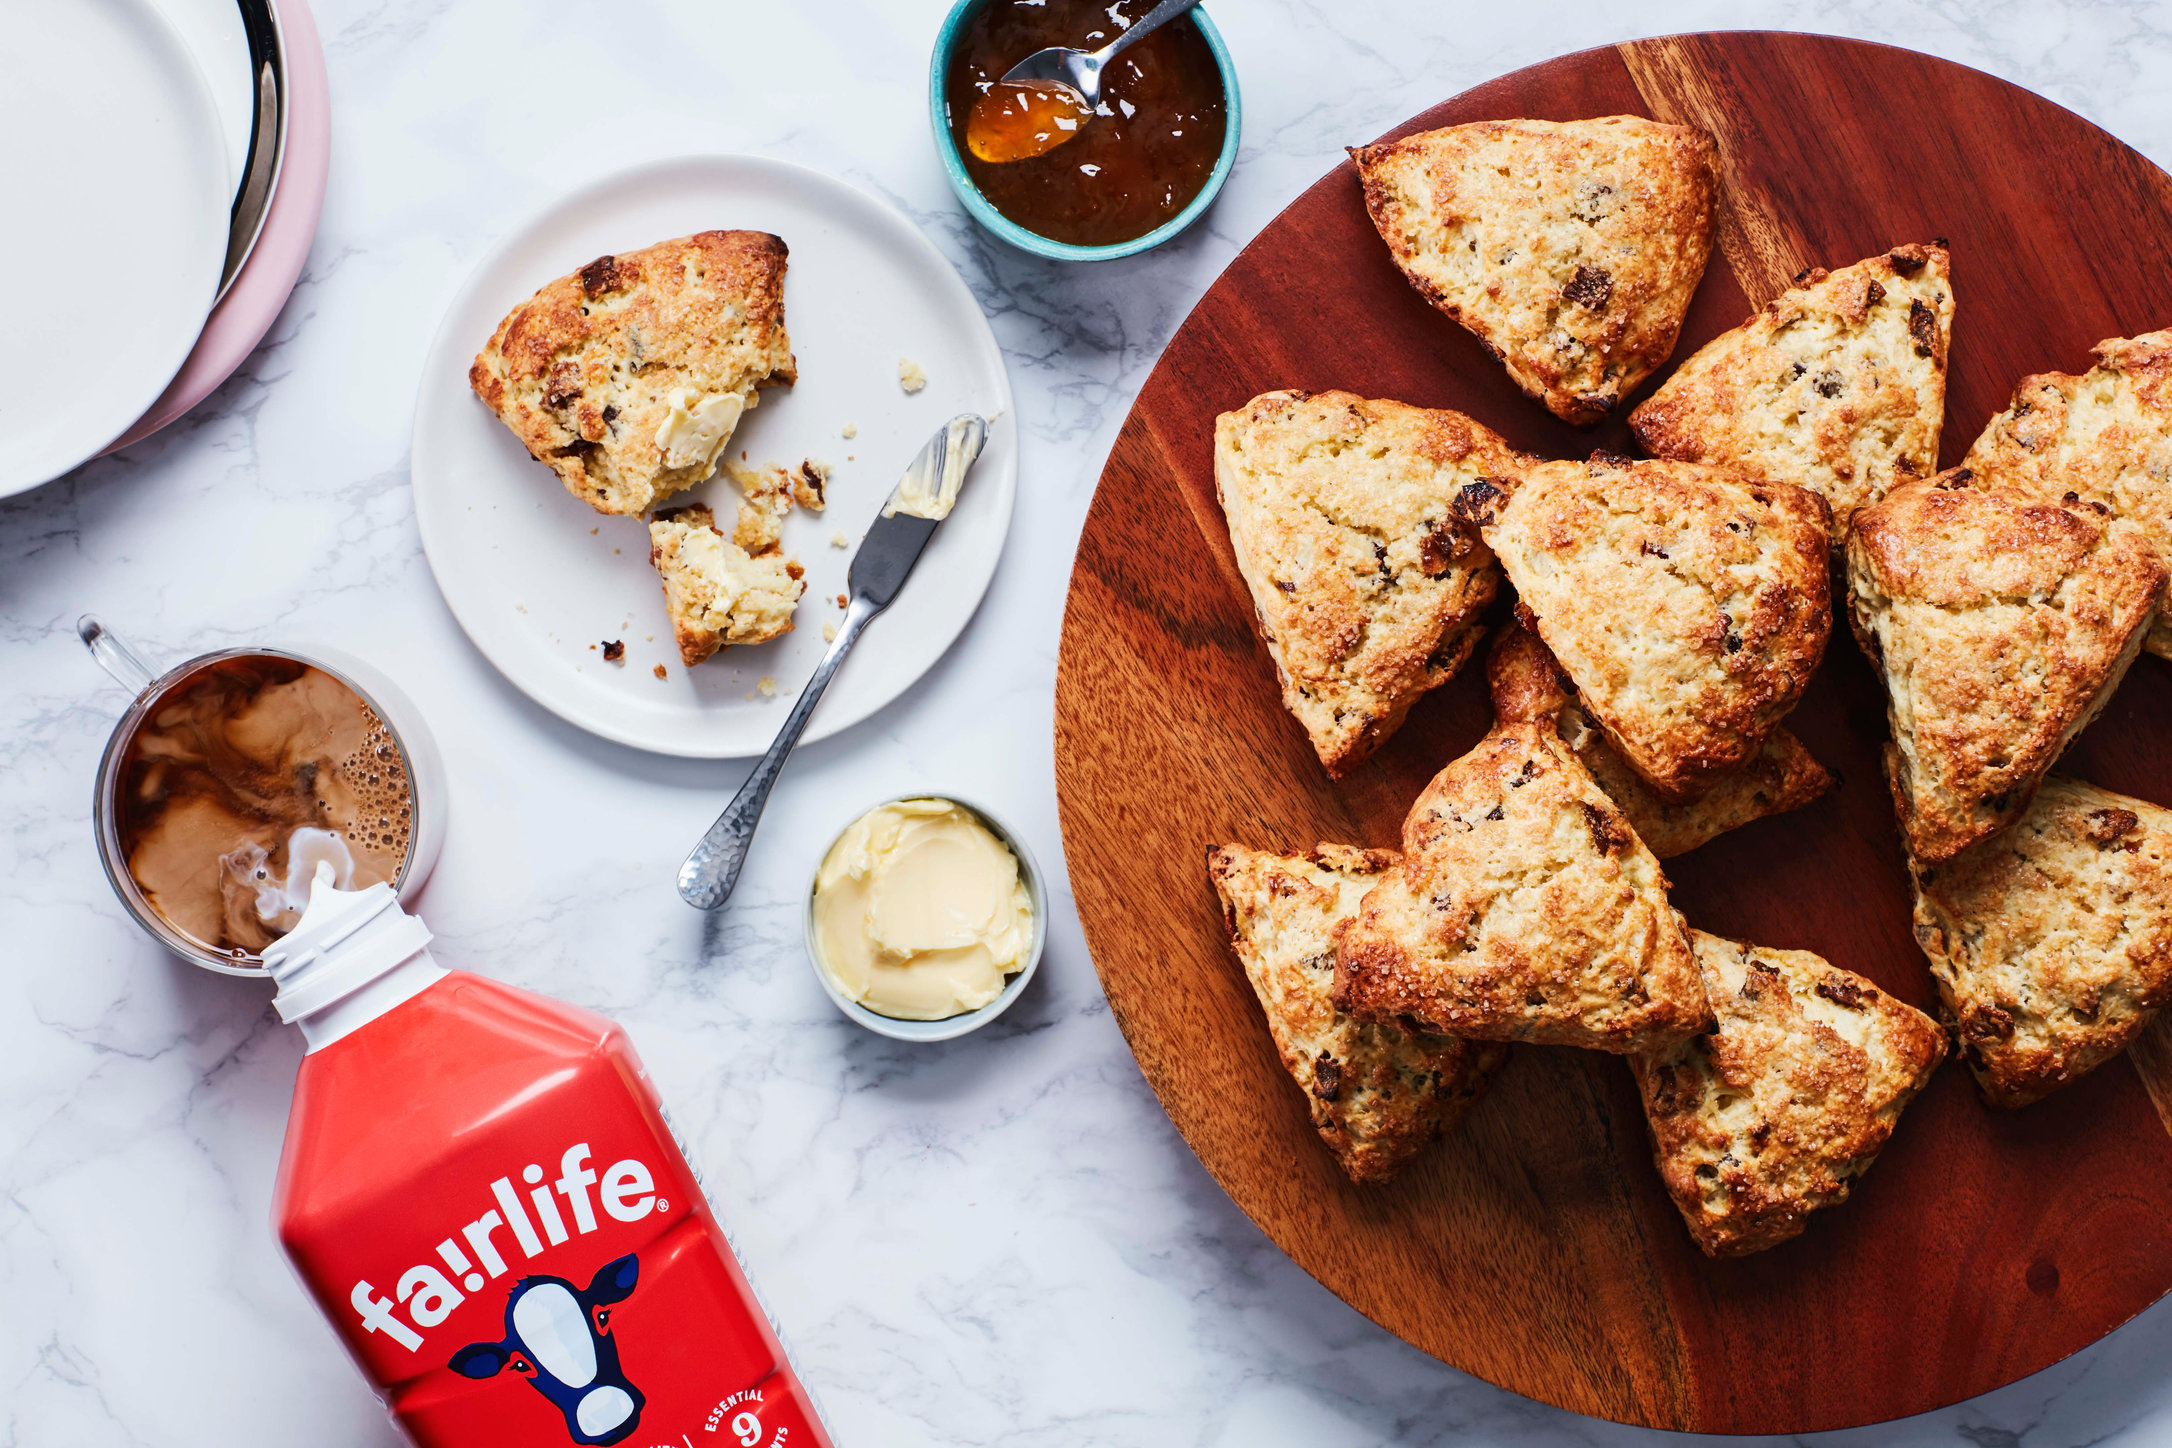 Apricot-Scones-FAIRLIFE-13-26062017-copy.jpg